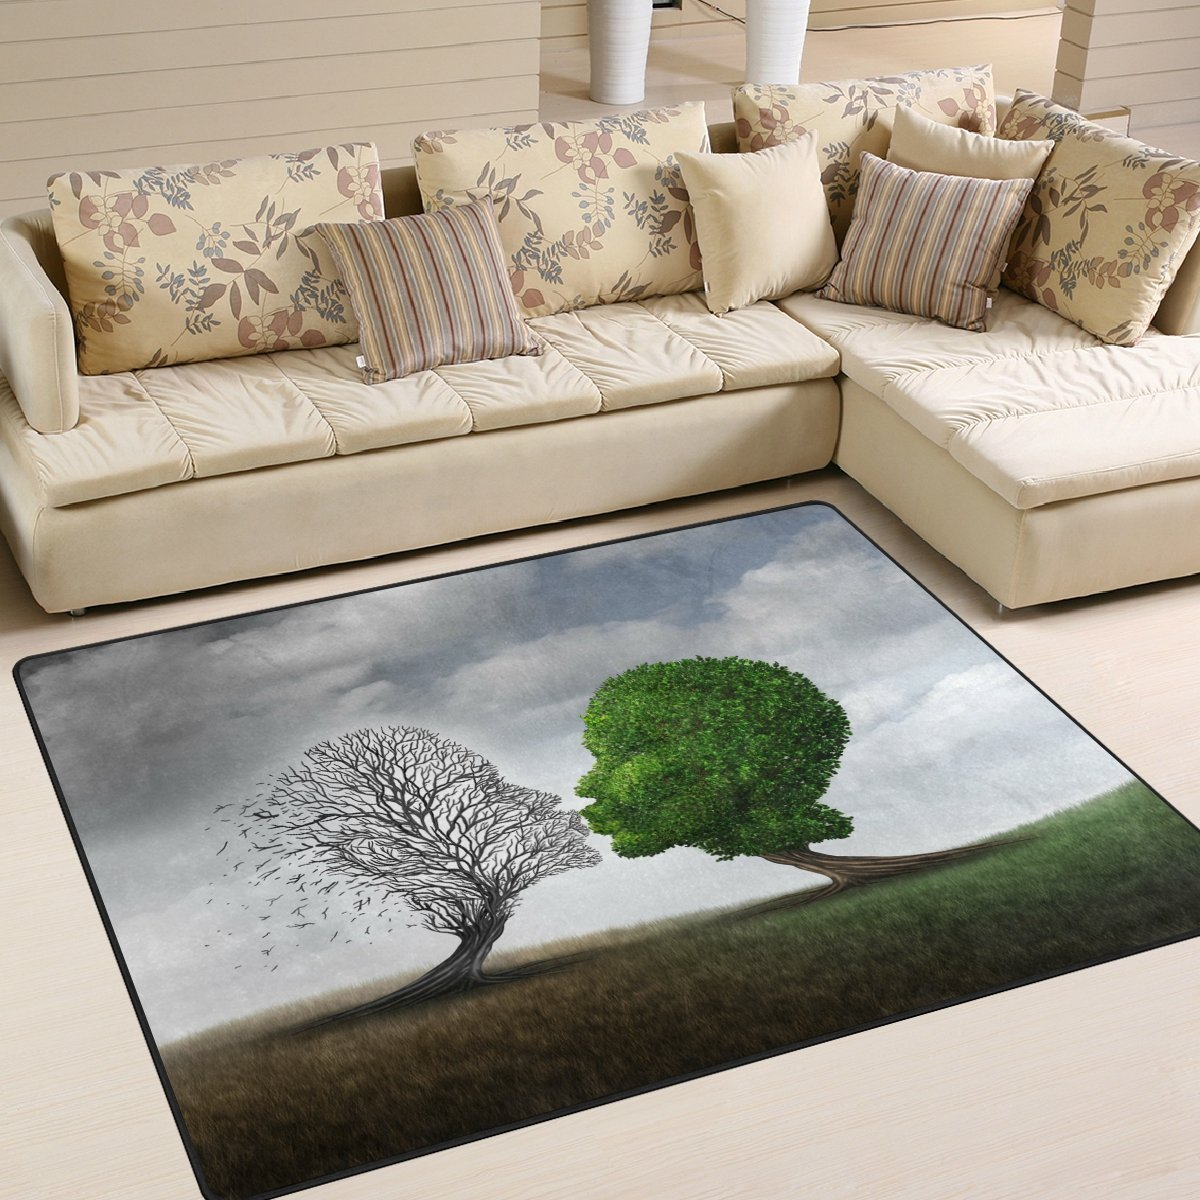 ALAZA Skull Tree of Life Area Rug Rugs for Living Room Bedroom 5'3 x 4' g3513164p147c162s244